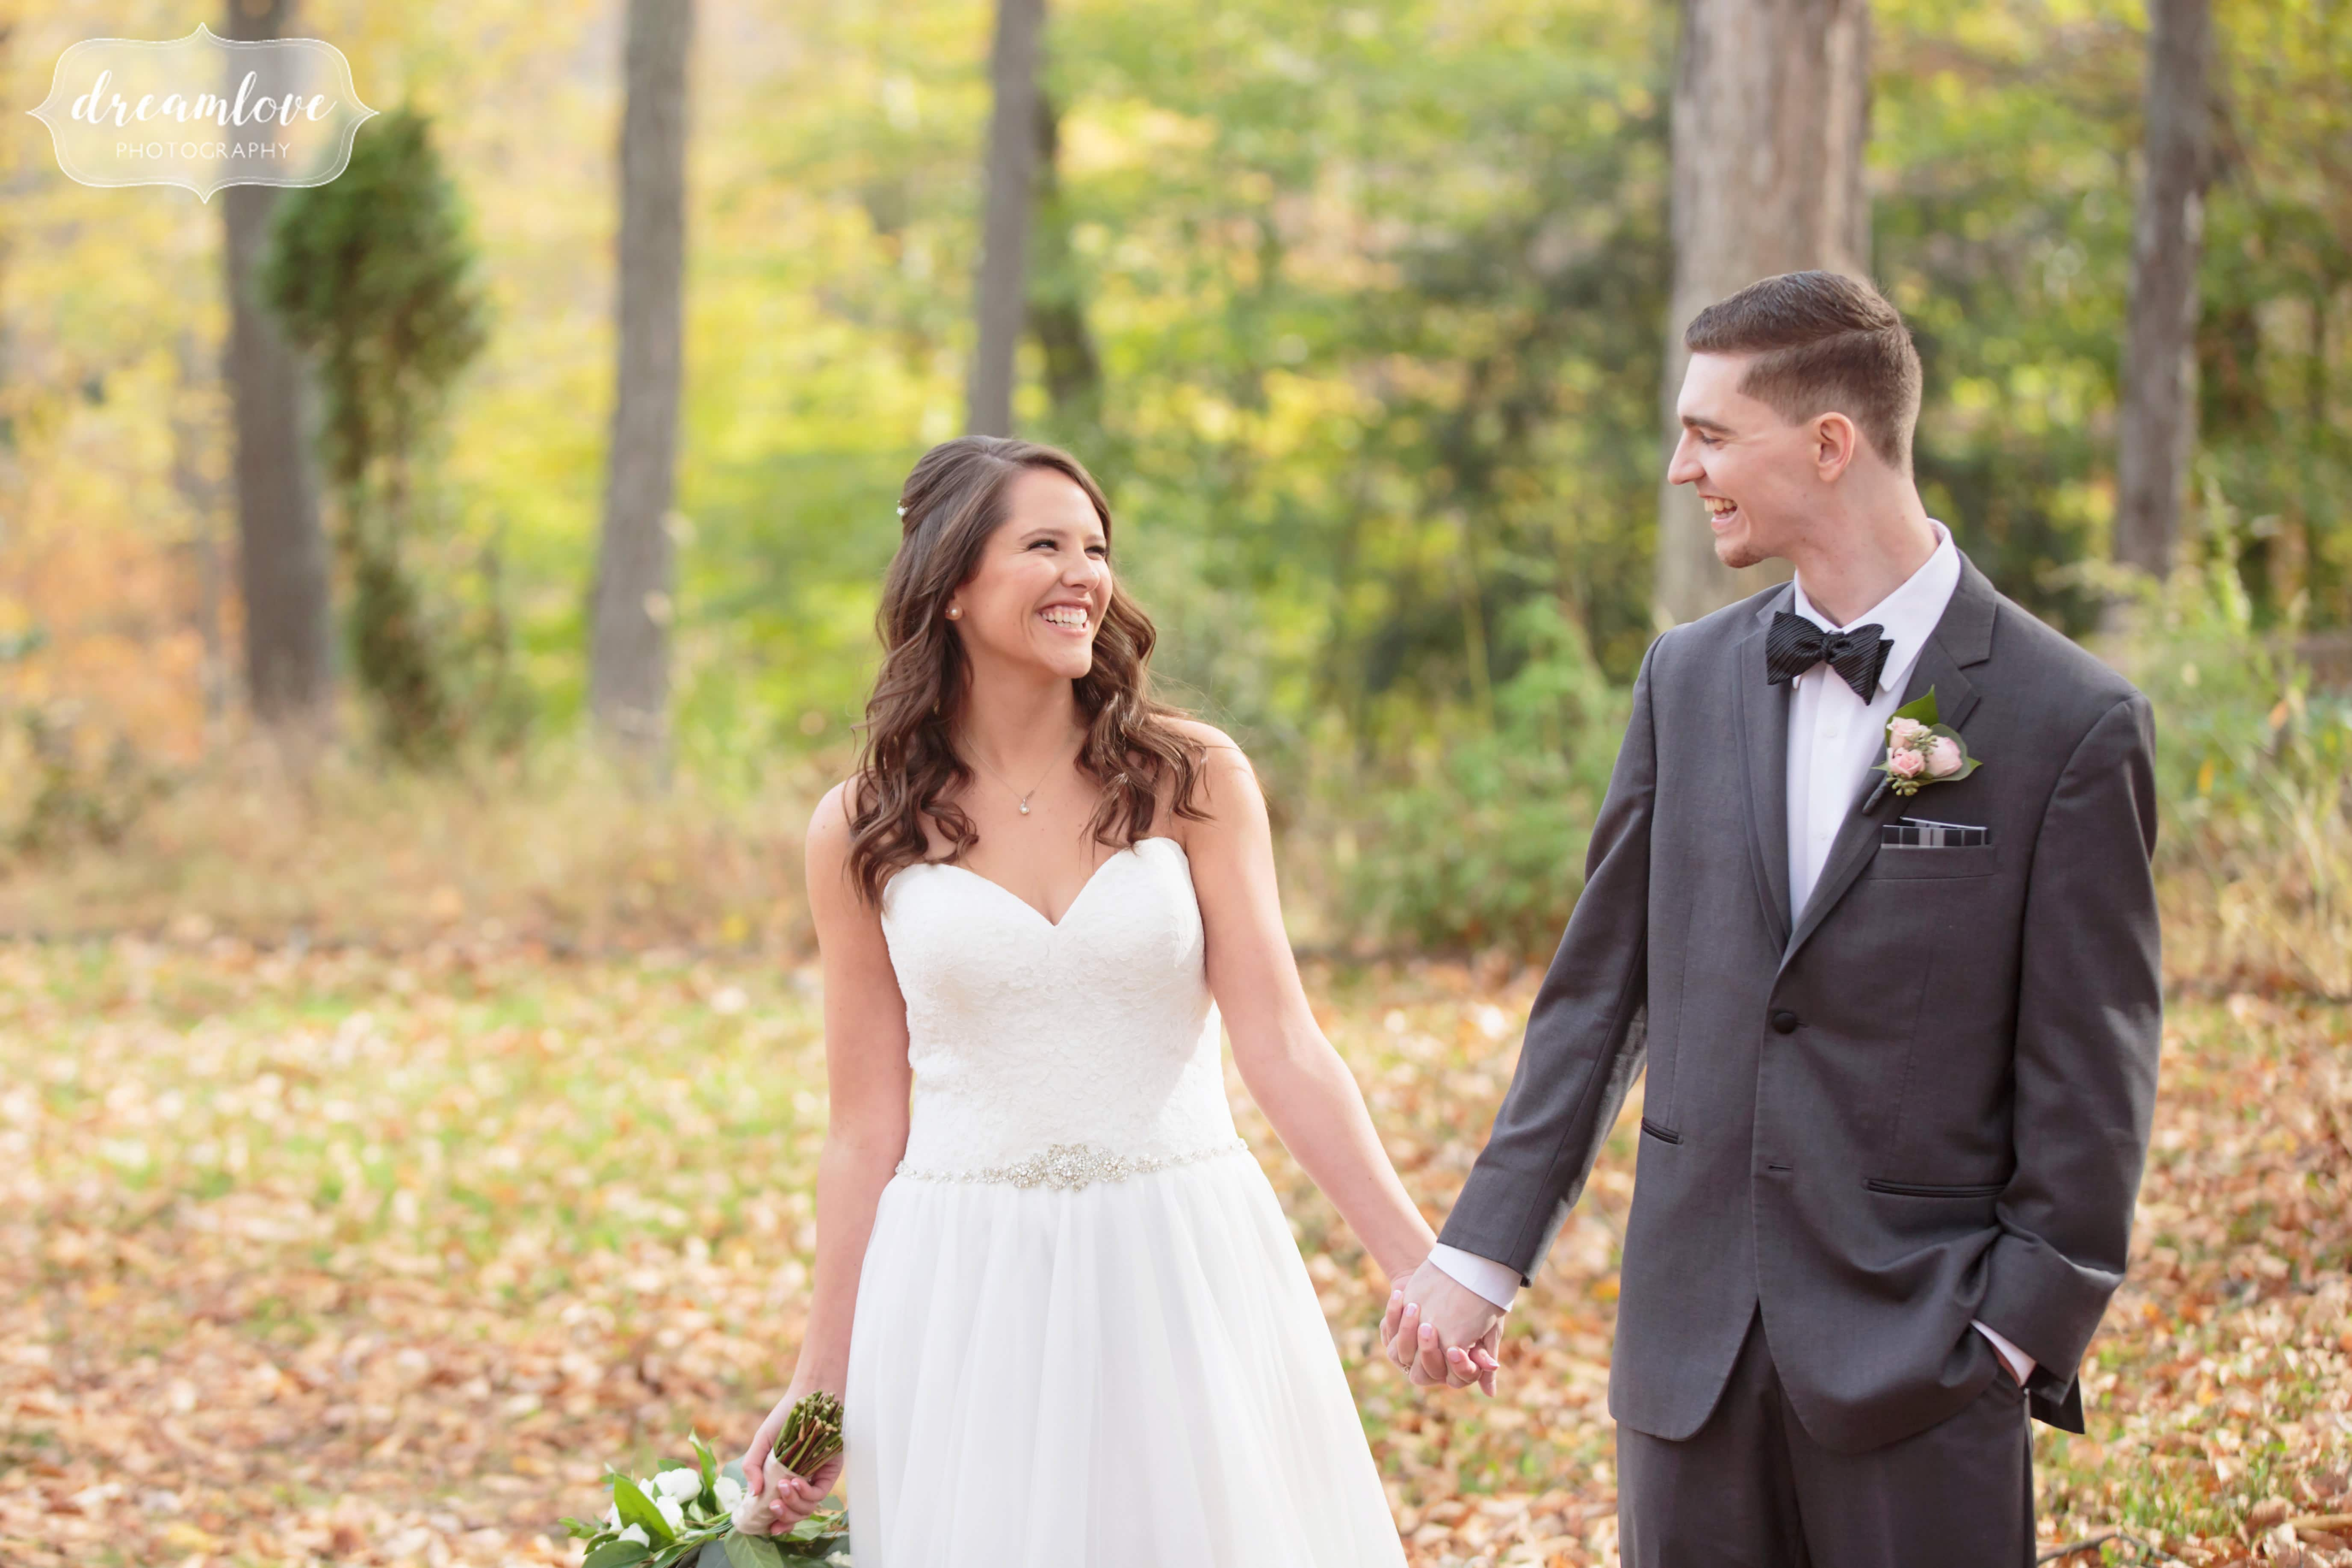 Romantic wedding photography of the bride and groom holding hands in the woods at the Pavilion on Crystal Lake outdoor venue in CT.